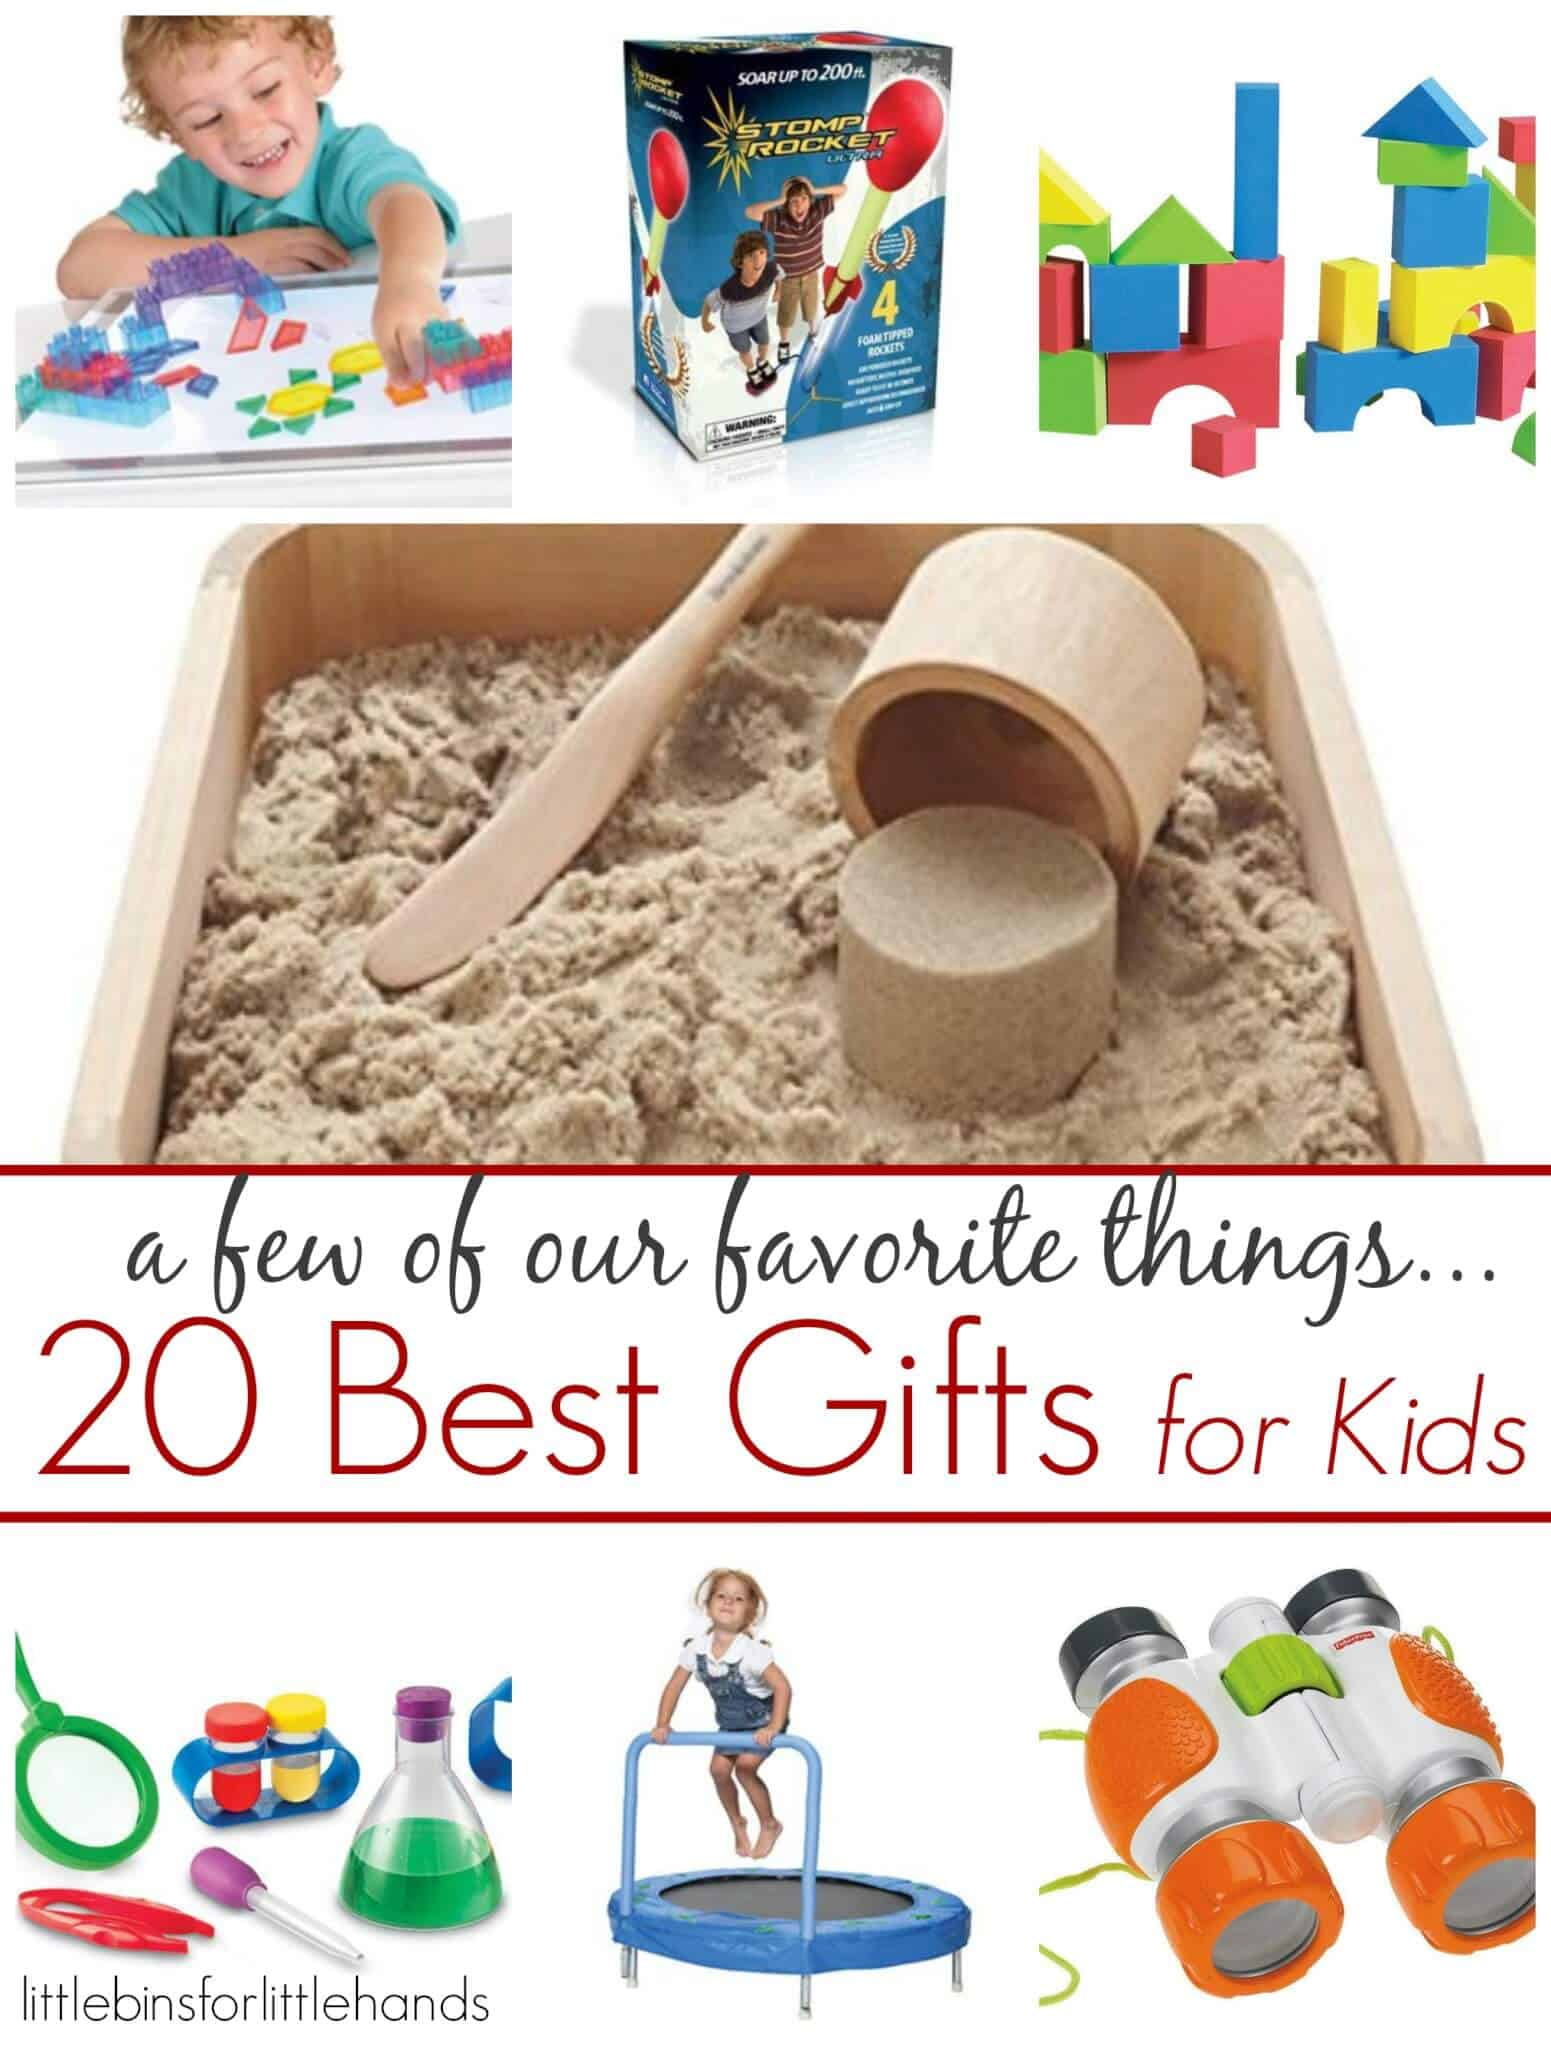 Best Gifts For 15 Year Old Boys: Top 10 Best Building Toys {Tuesday Top 10 Holiday Lists}